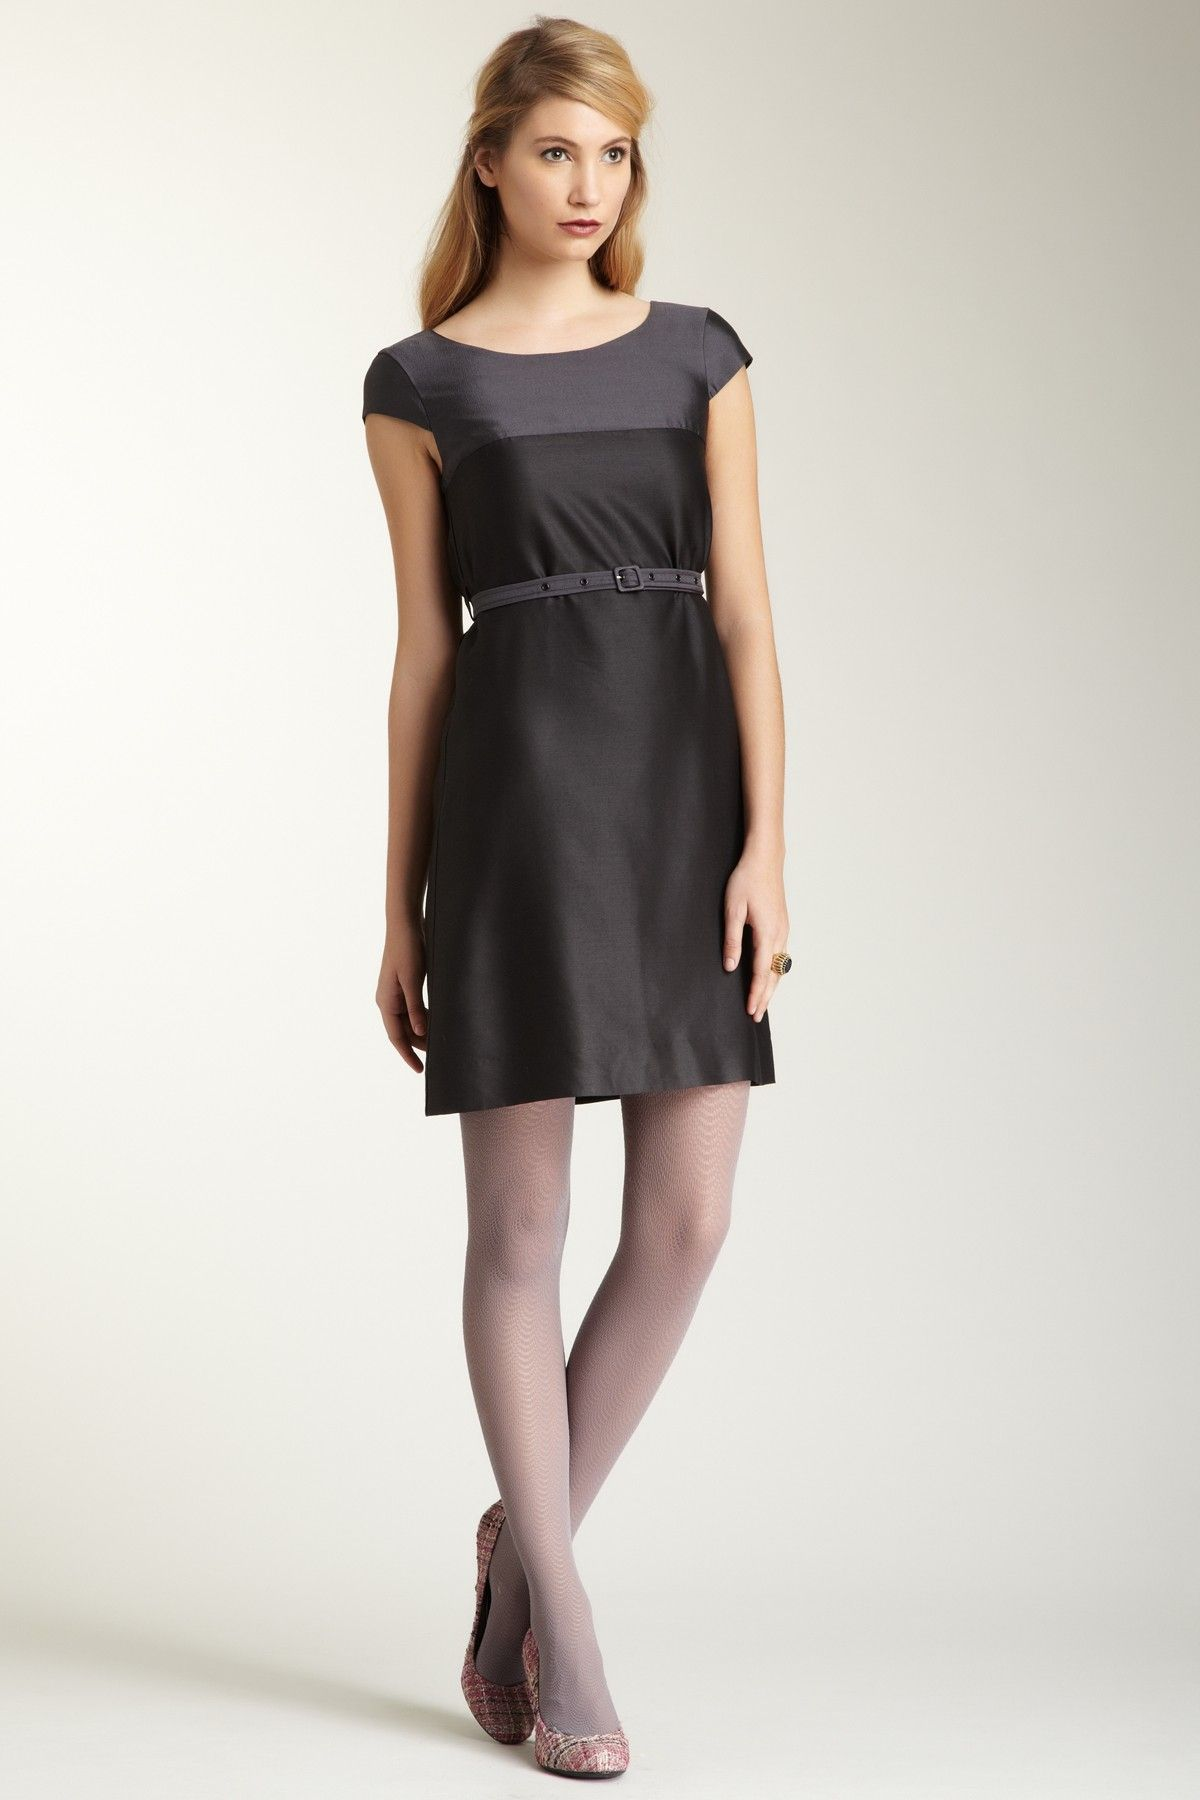 cute little hipster dress (With images) Hipster dress